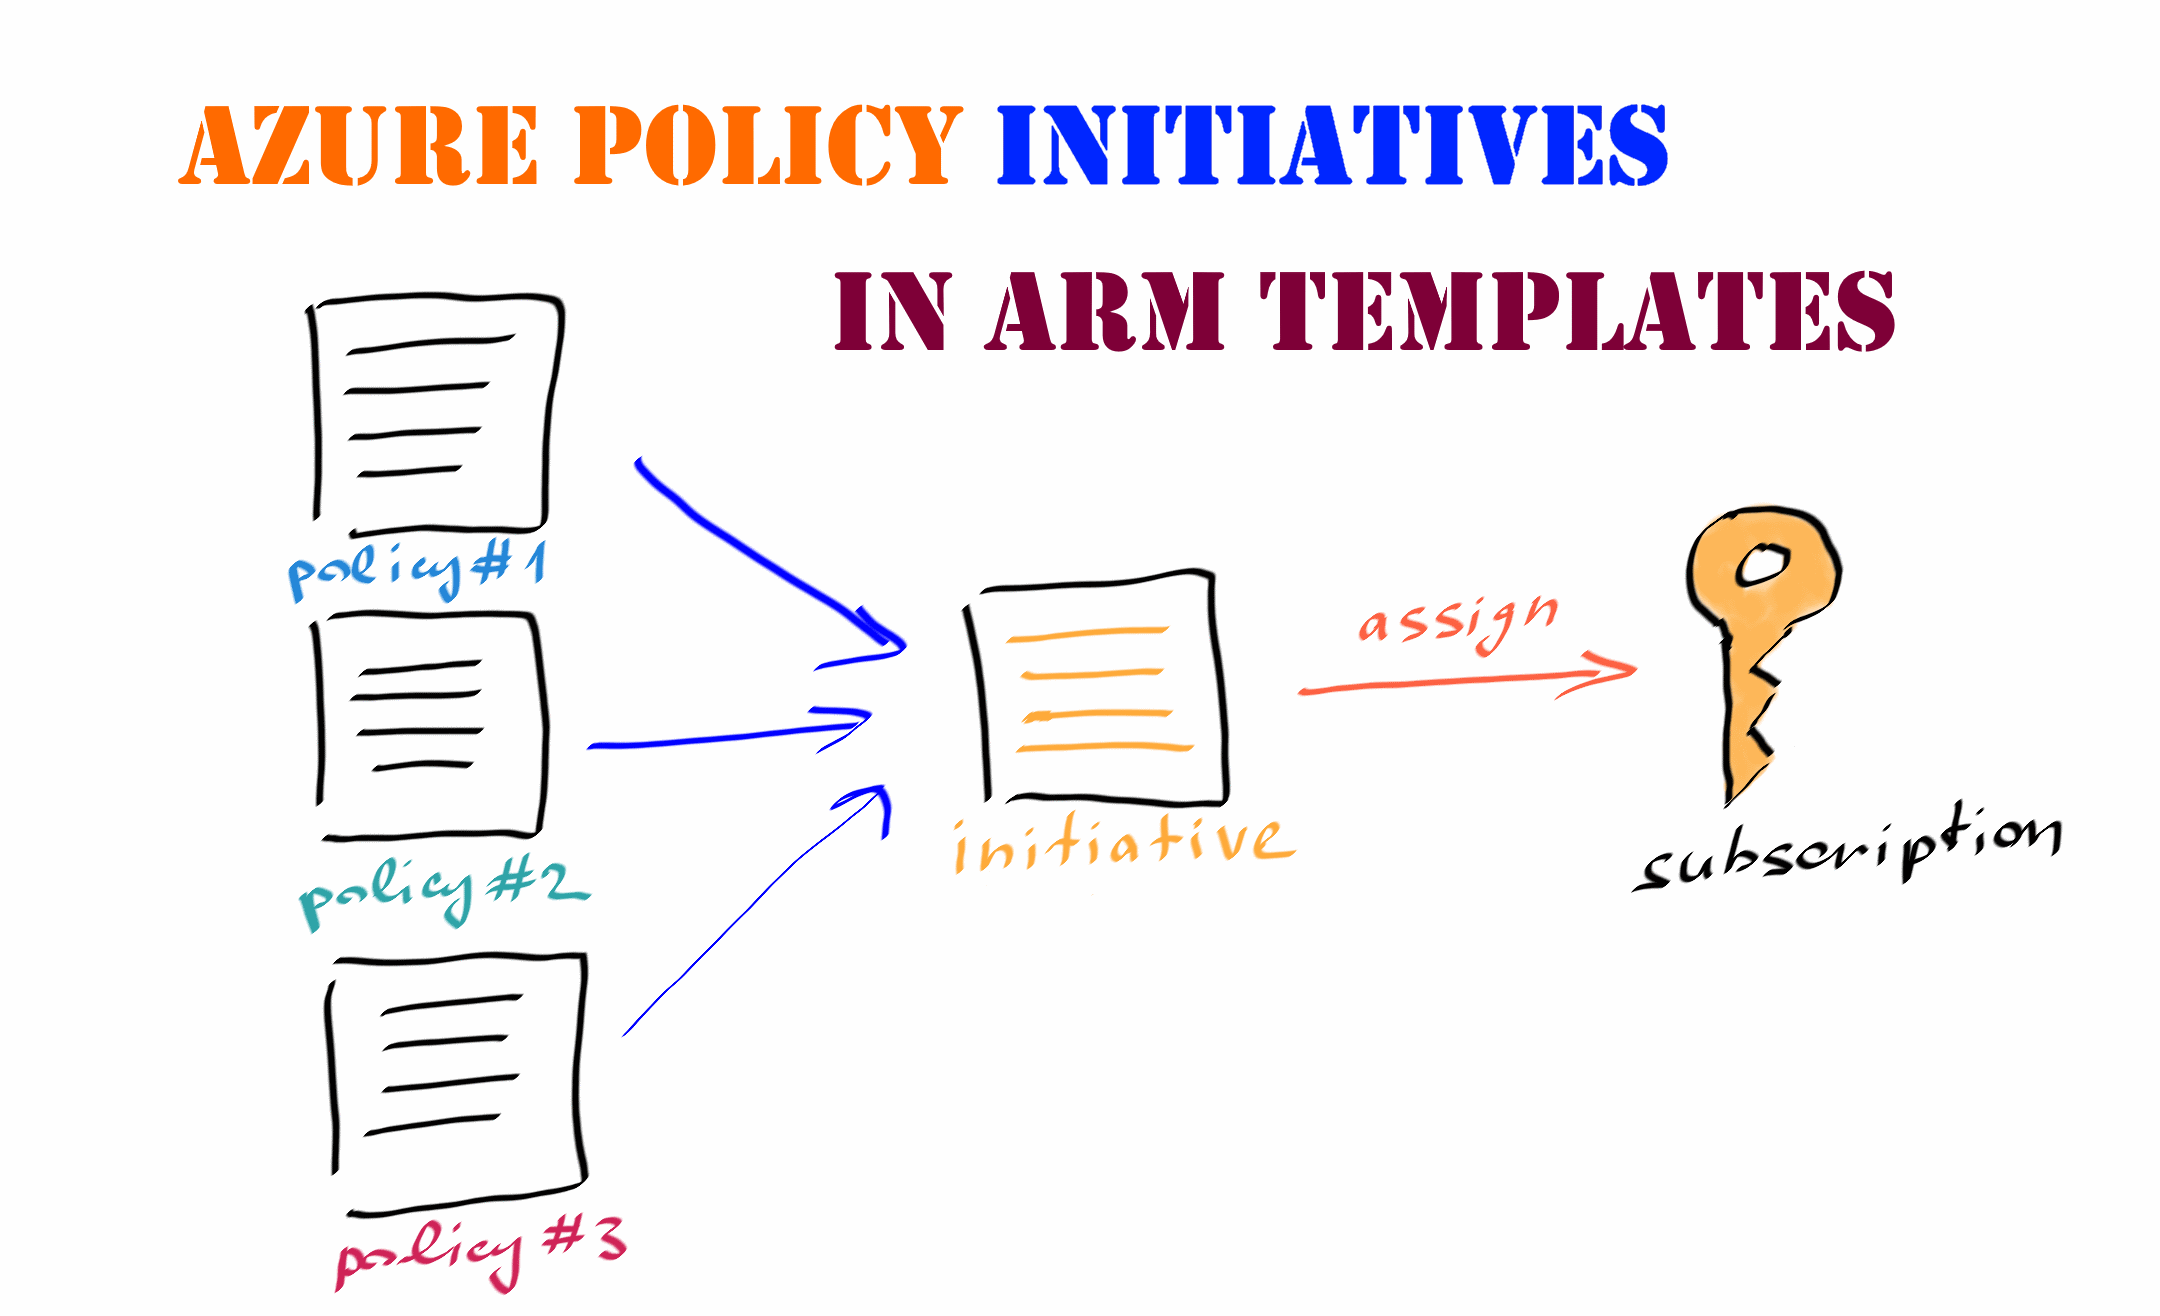 Using ARM templates to deploy Azure Policy initiatives